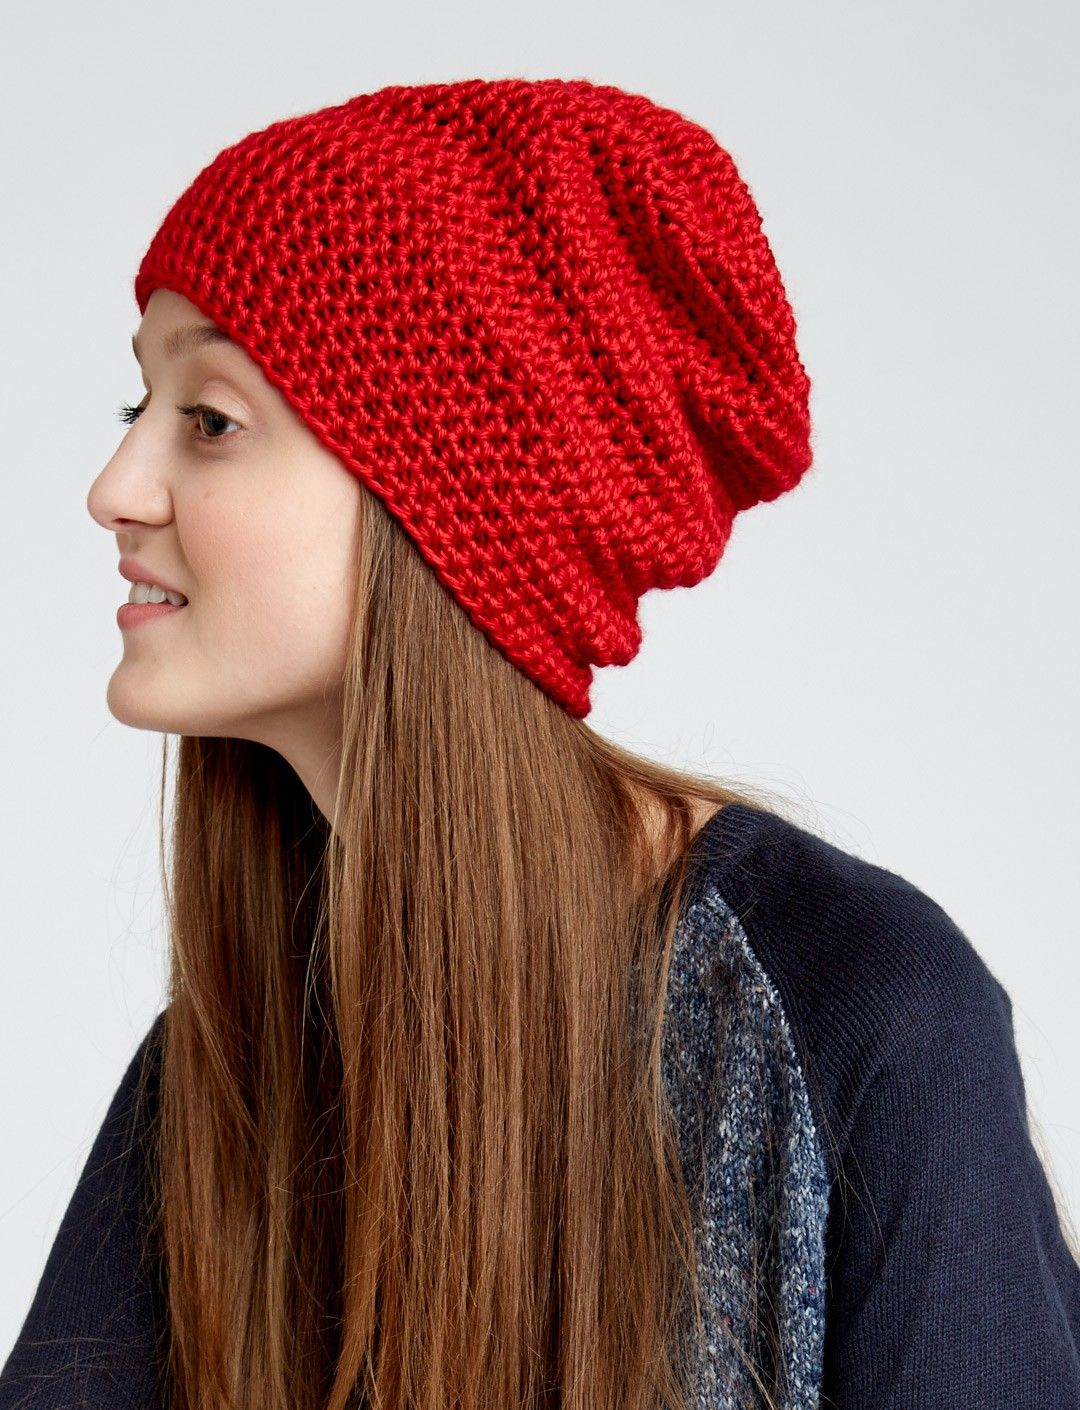 Knitting Beanie Patterns : Free slouchy beanie pattern intended for beginners and it